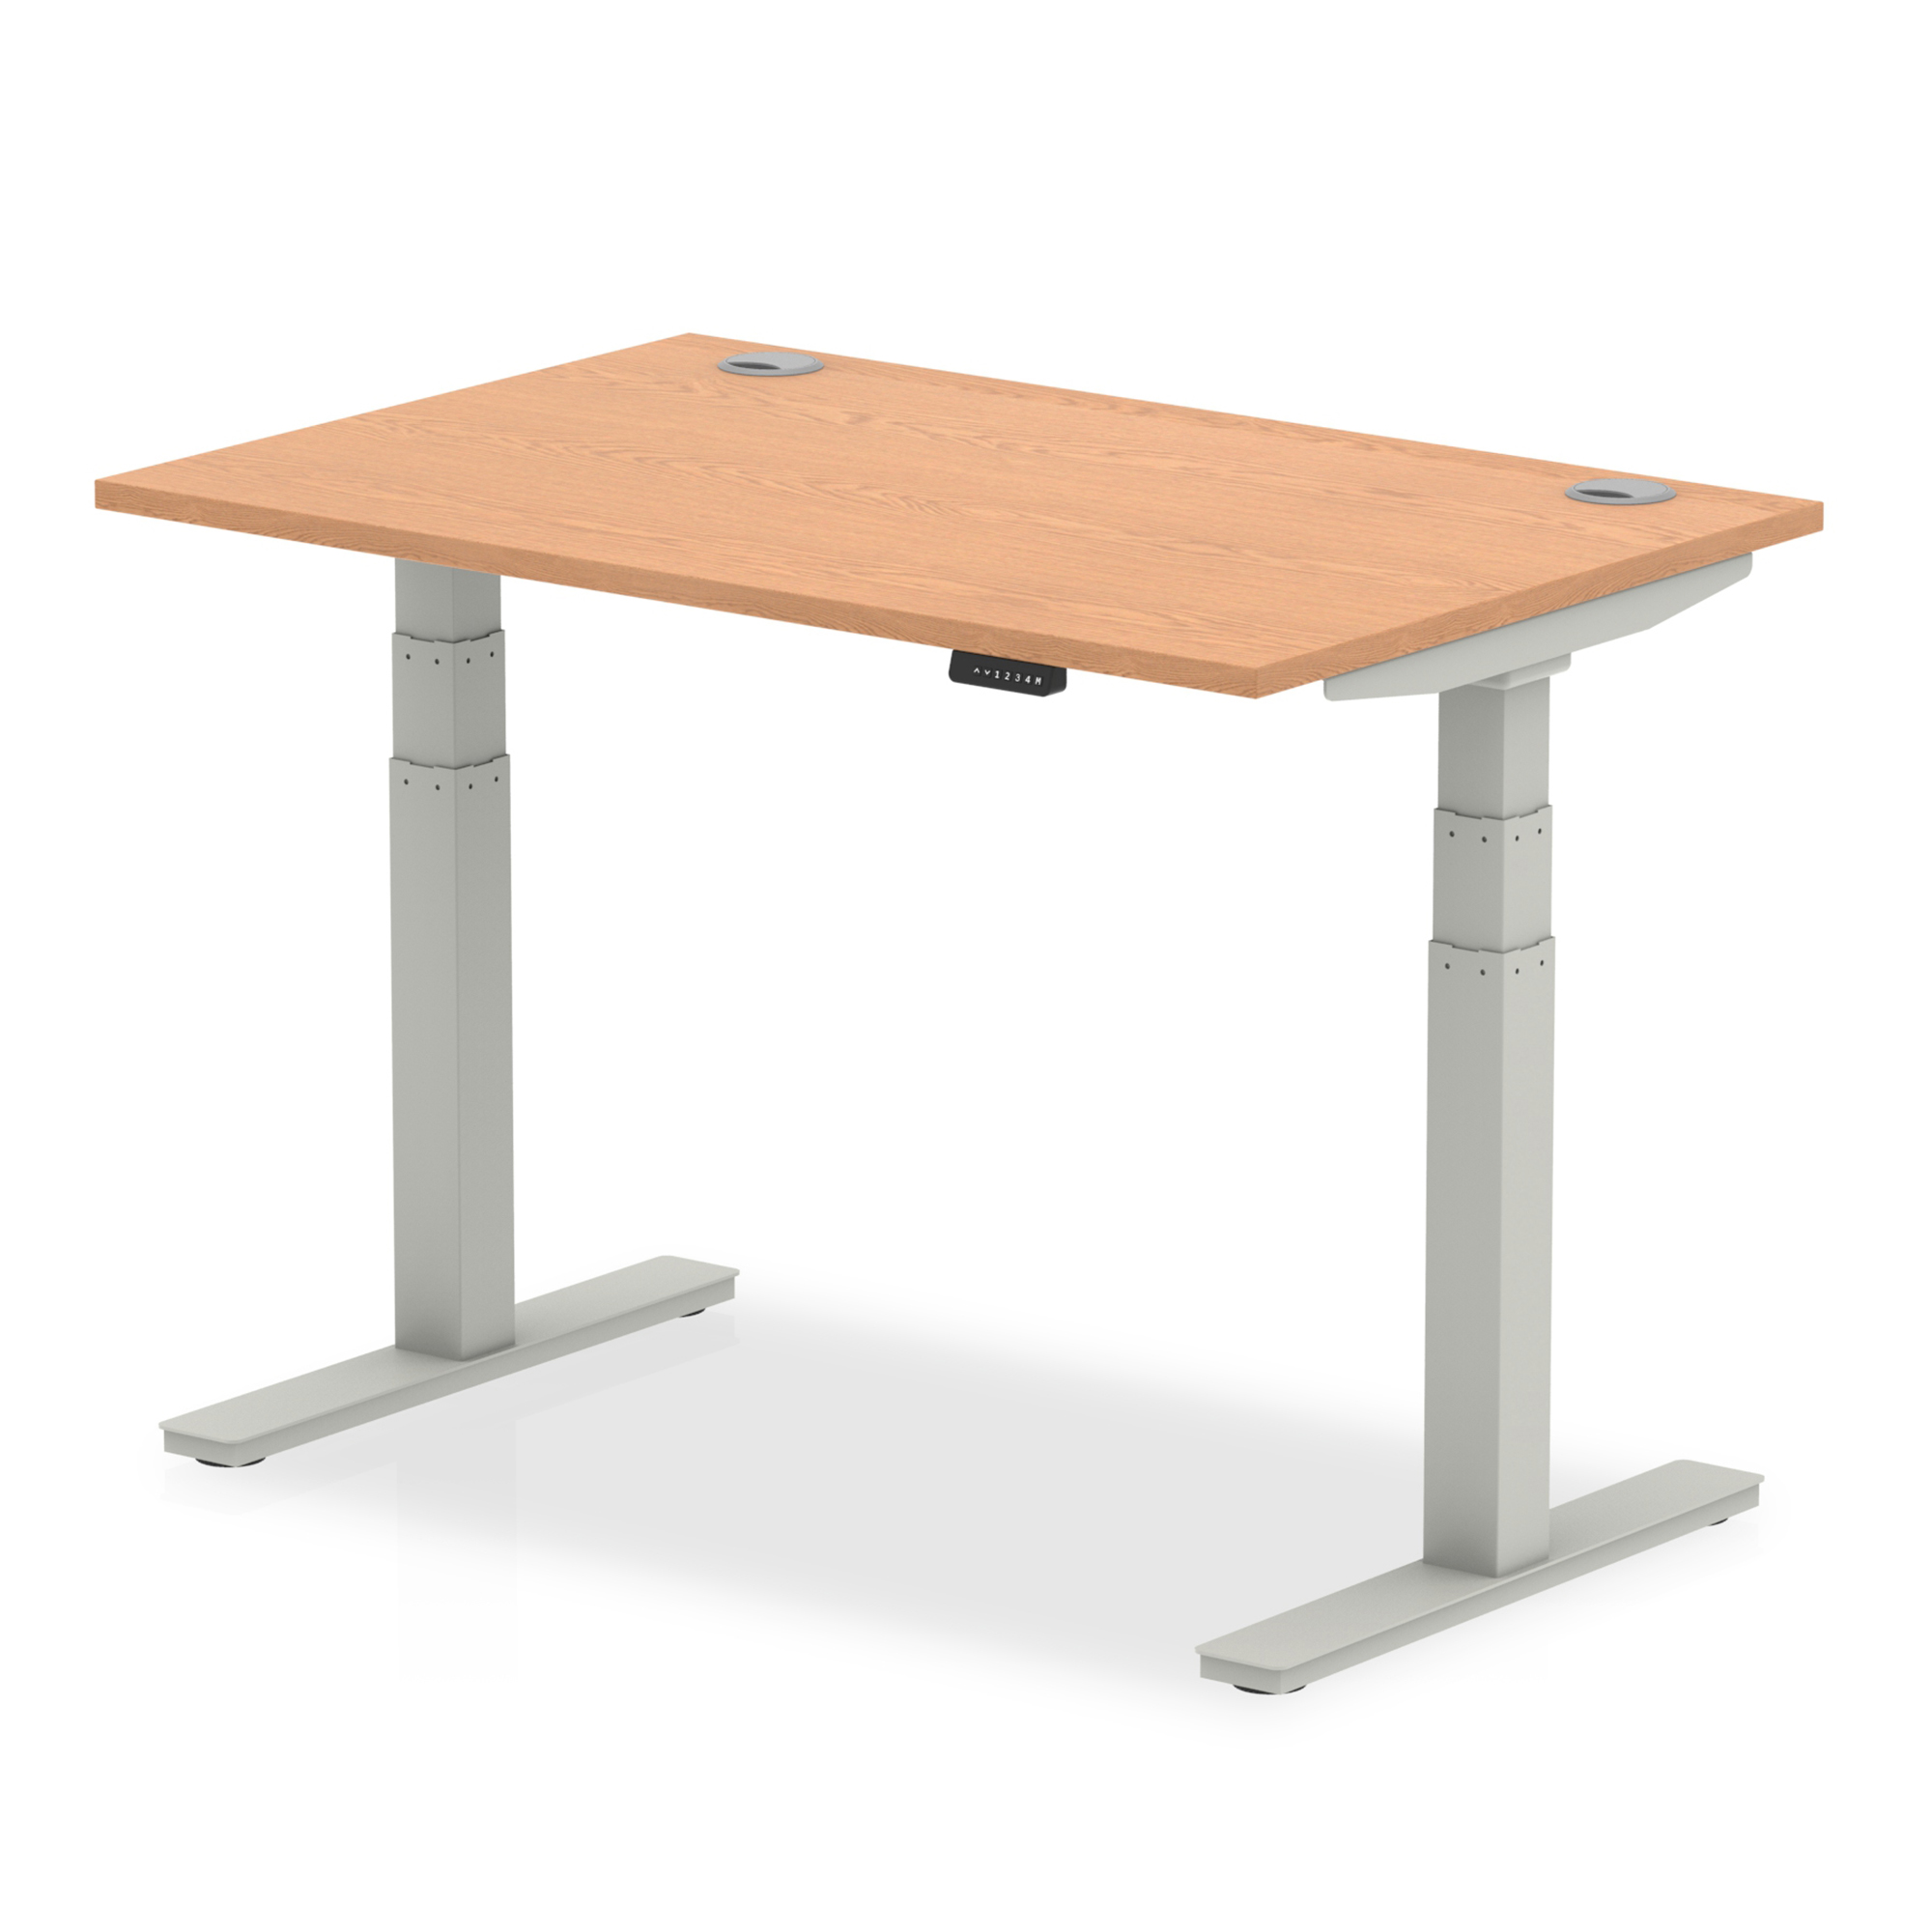 Trexus Sit Stand Desk With Cable Ports Silver Legs 1200x800mm Oak Ref HA01097